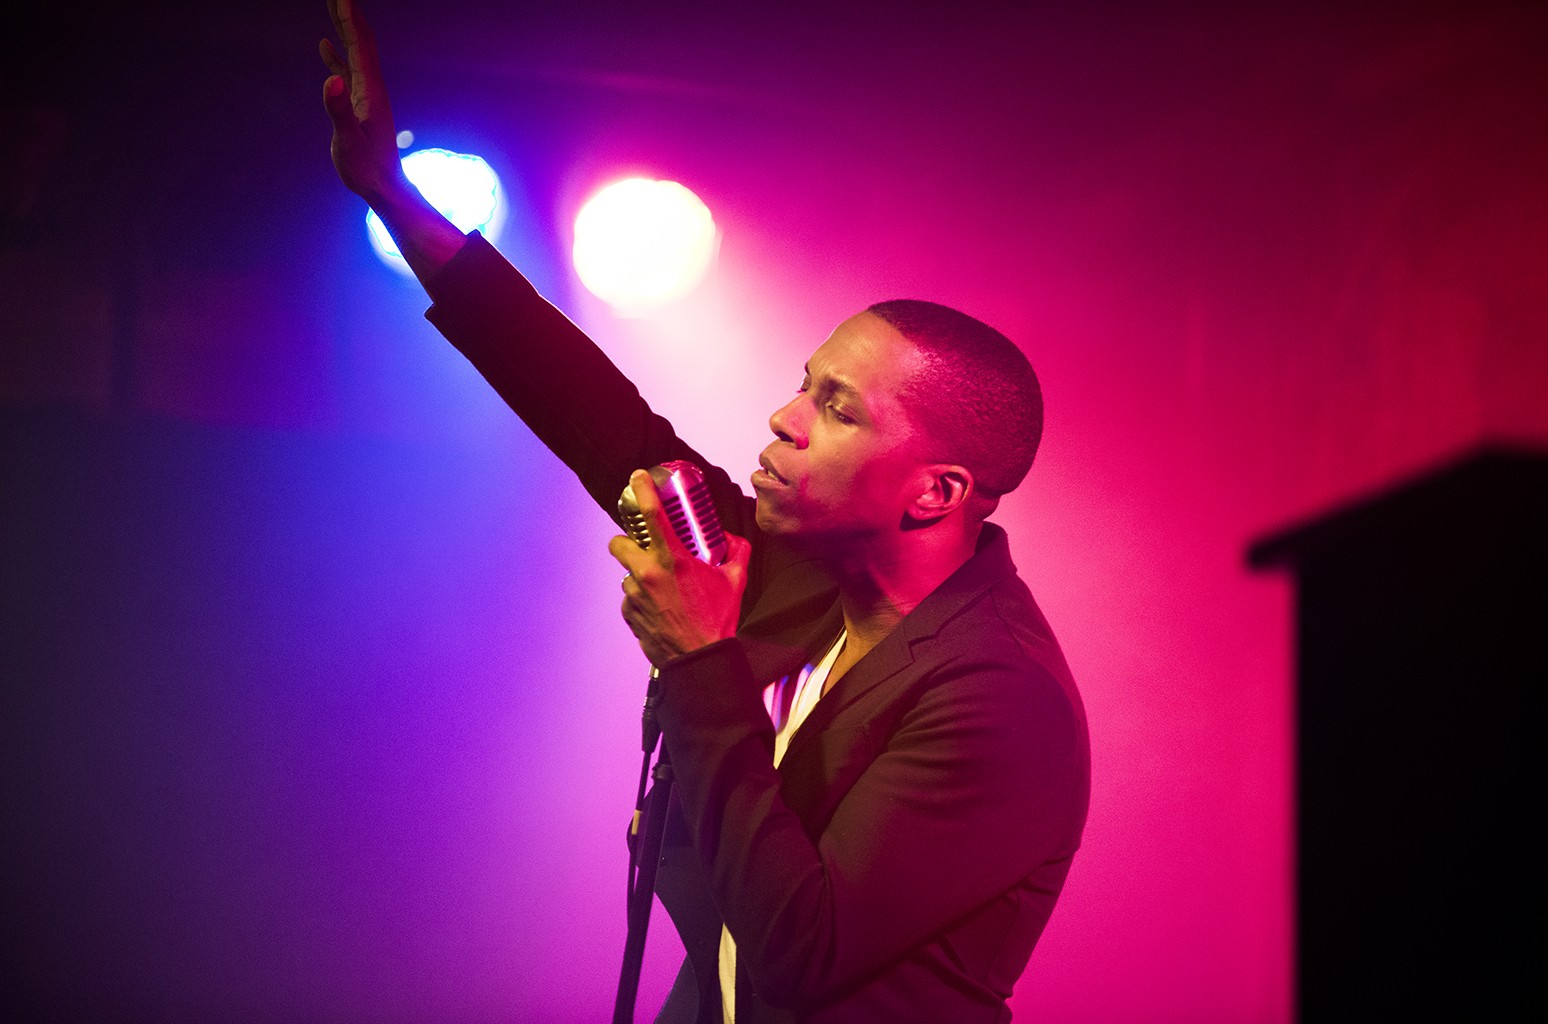 Leslie Odom Jr. performs during his album release party